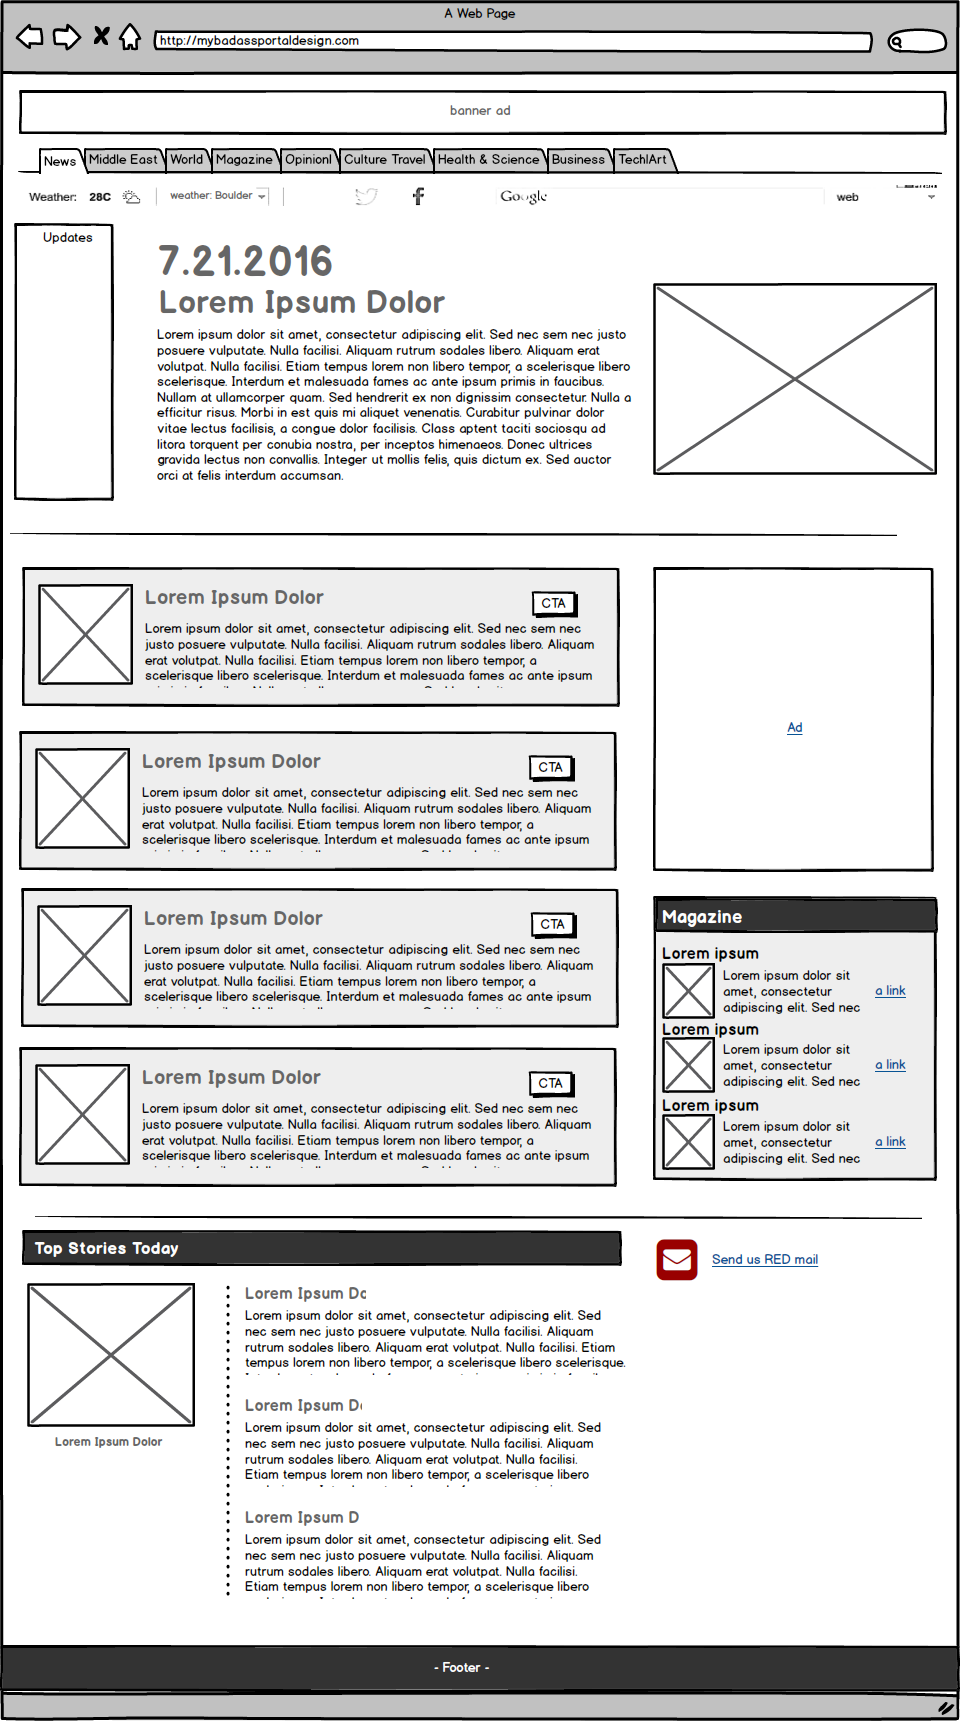 Annotated wireframes help team members understand what I think should happen on this page.